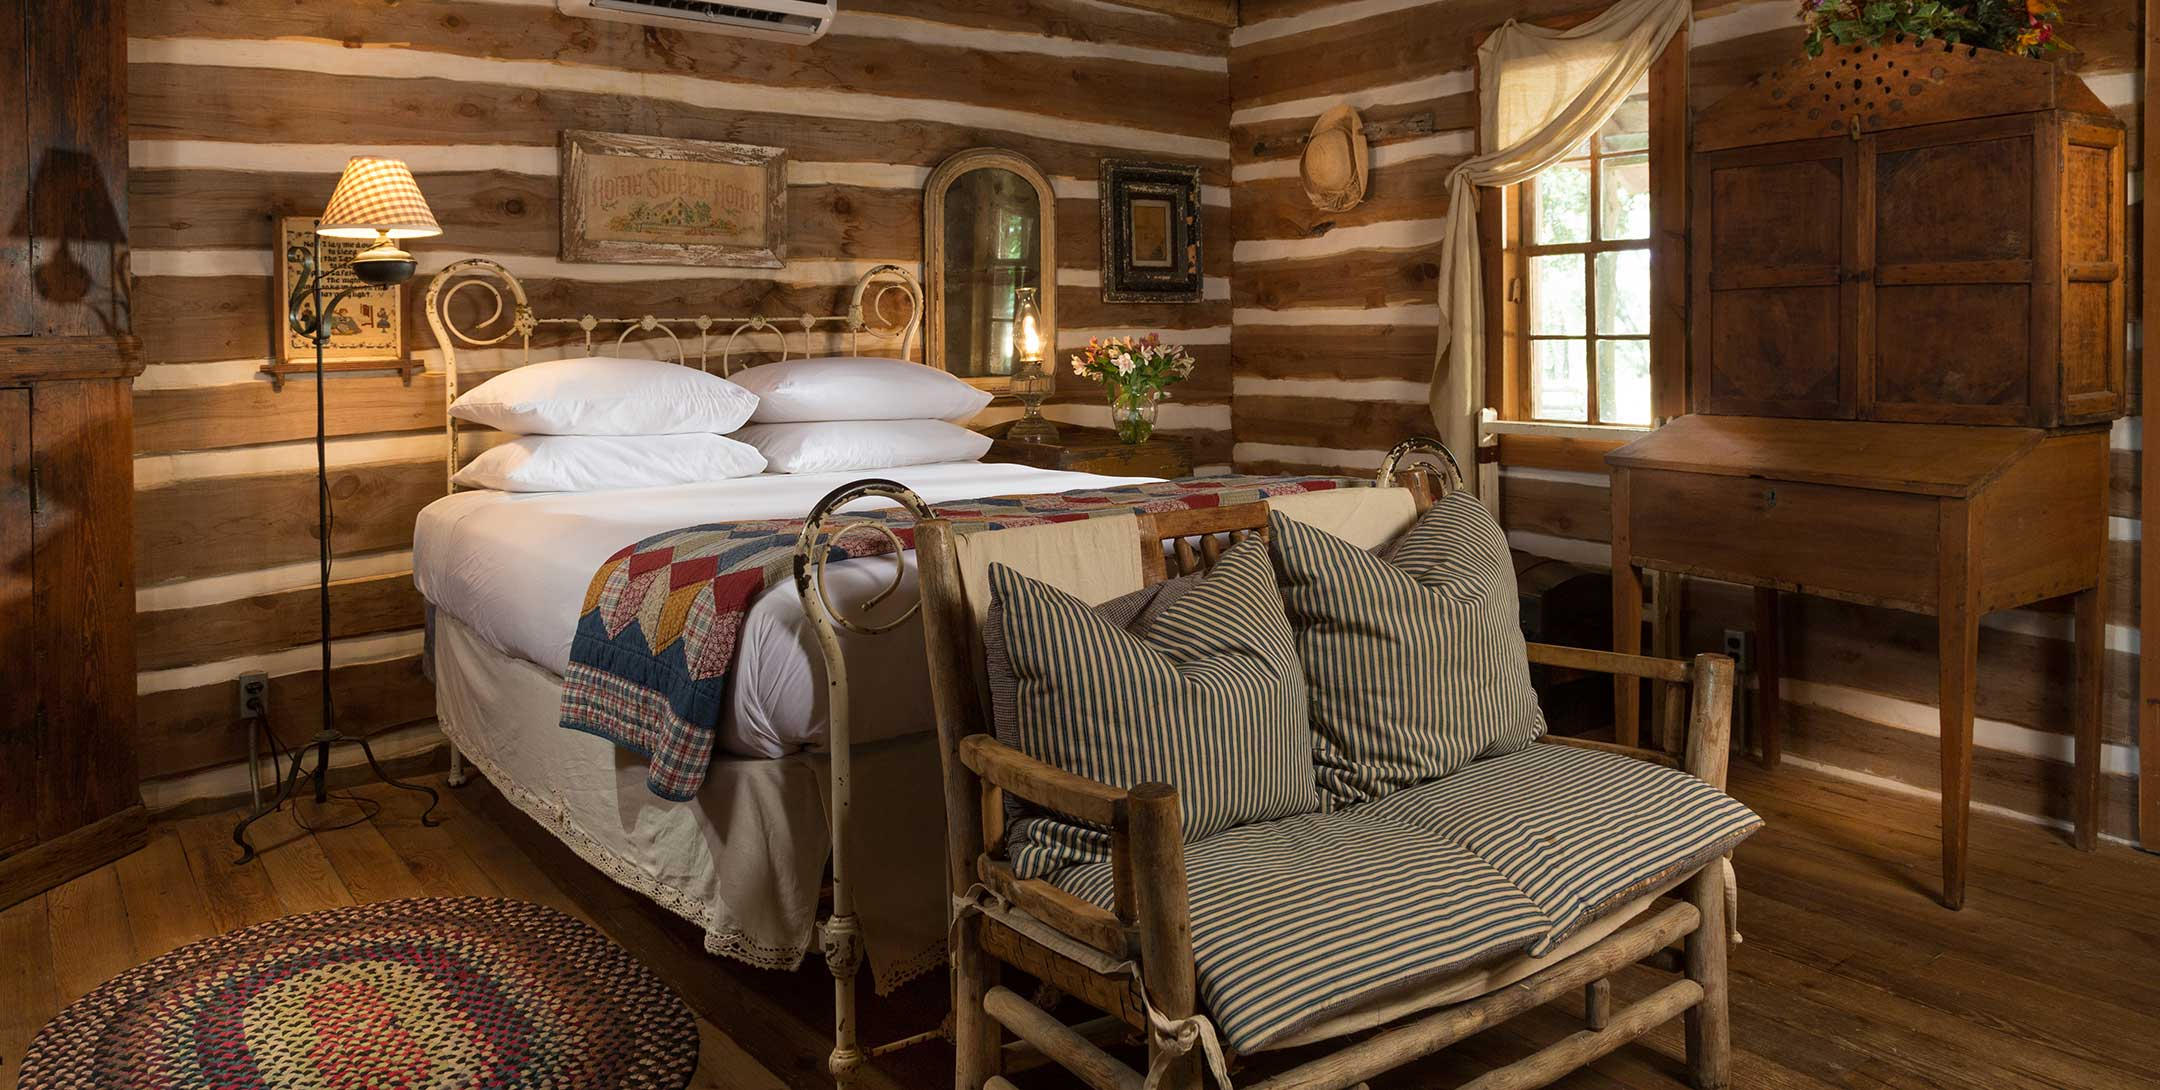 The Log Cabin - Ranches near Houston TX